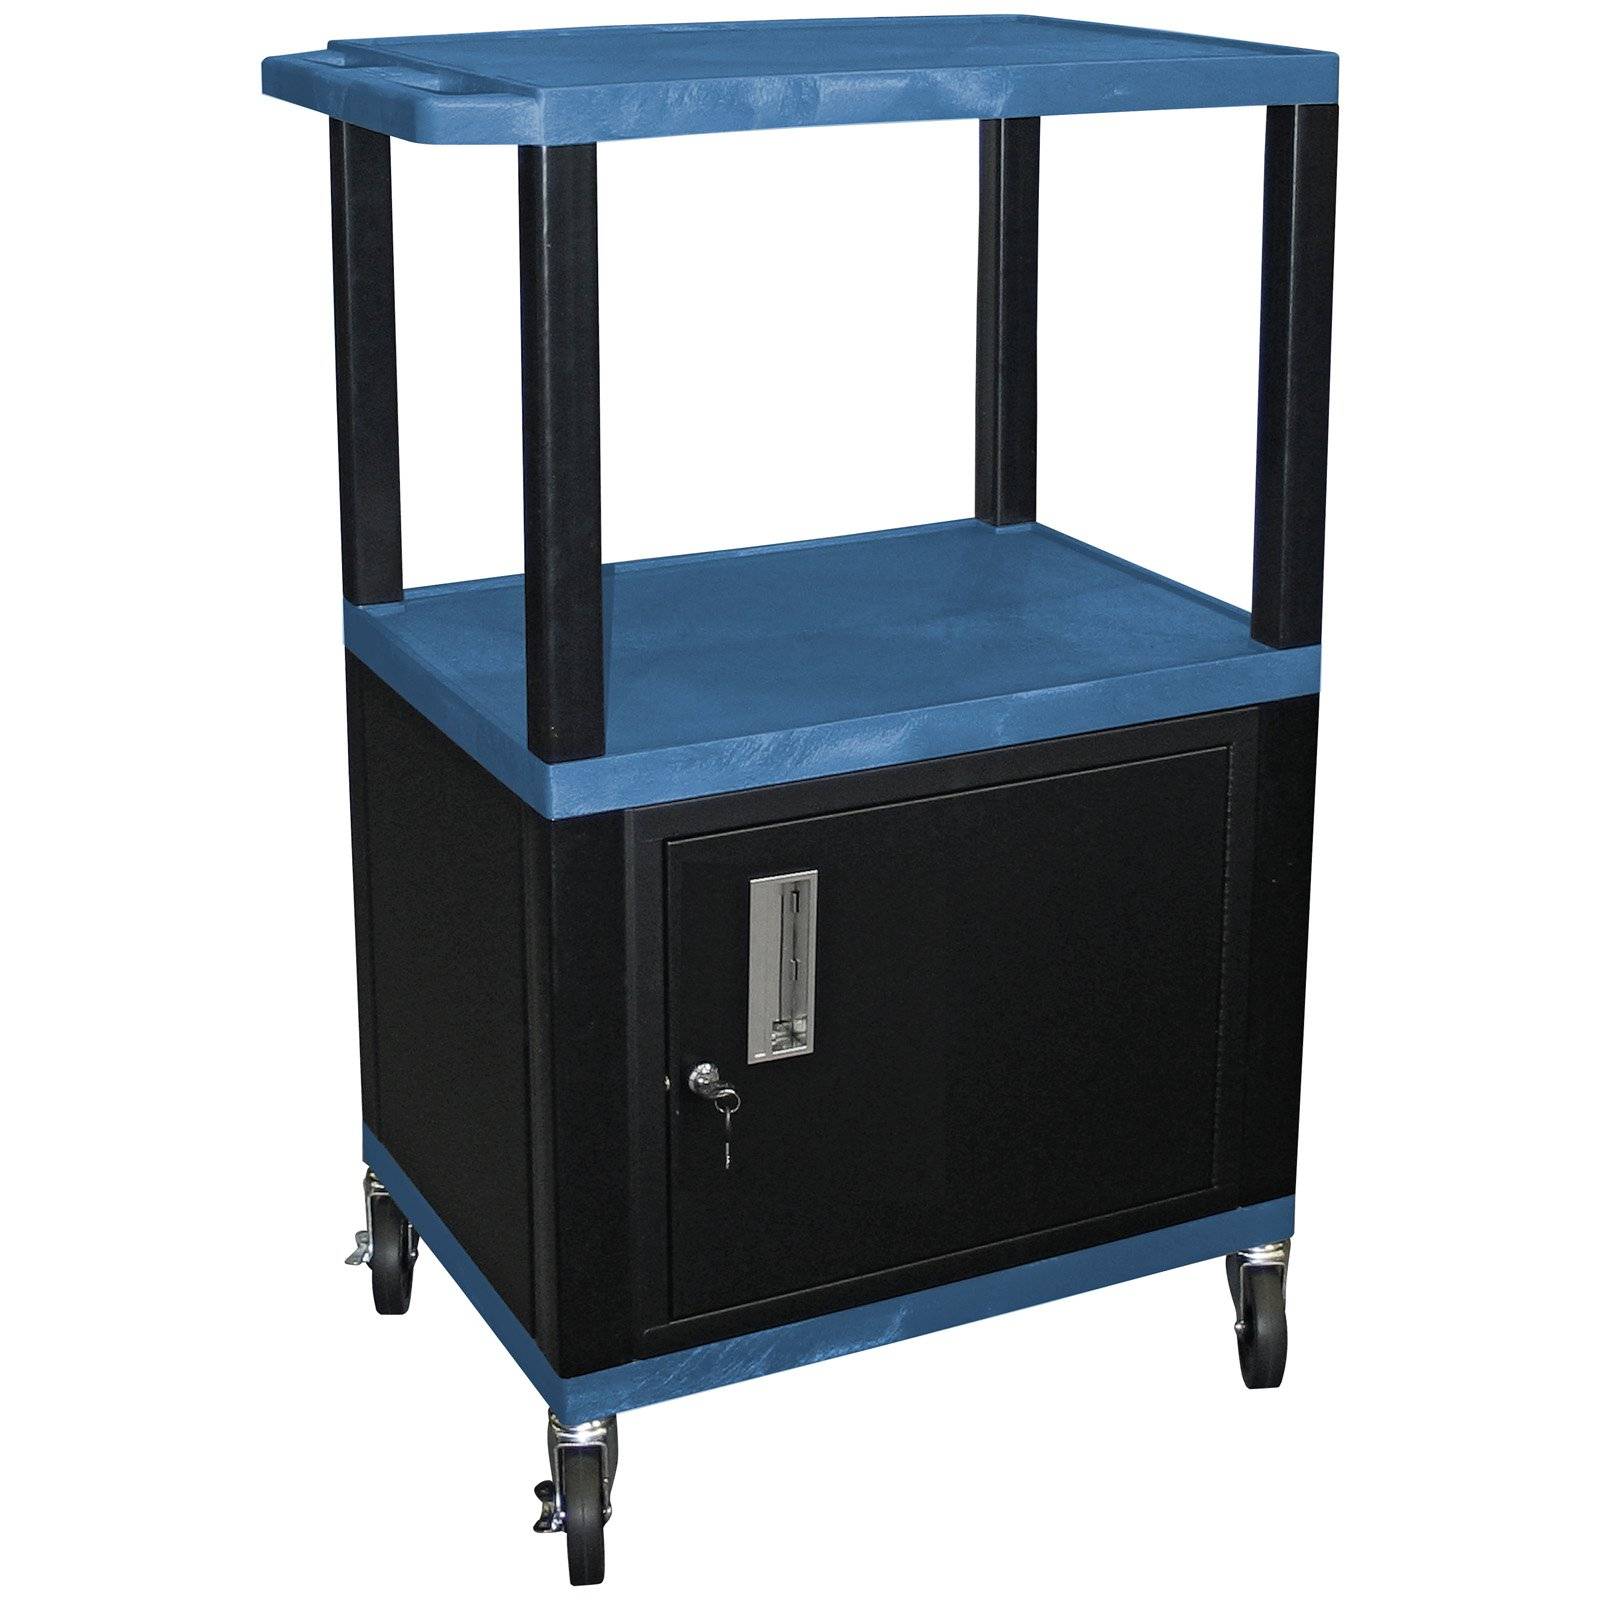 Tuffy 42 in. Utility Cart with Locking Cabinet - Black Legs/Blue Shelves